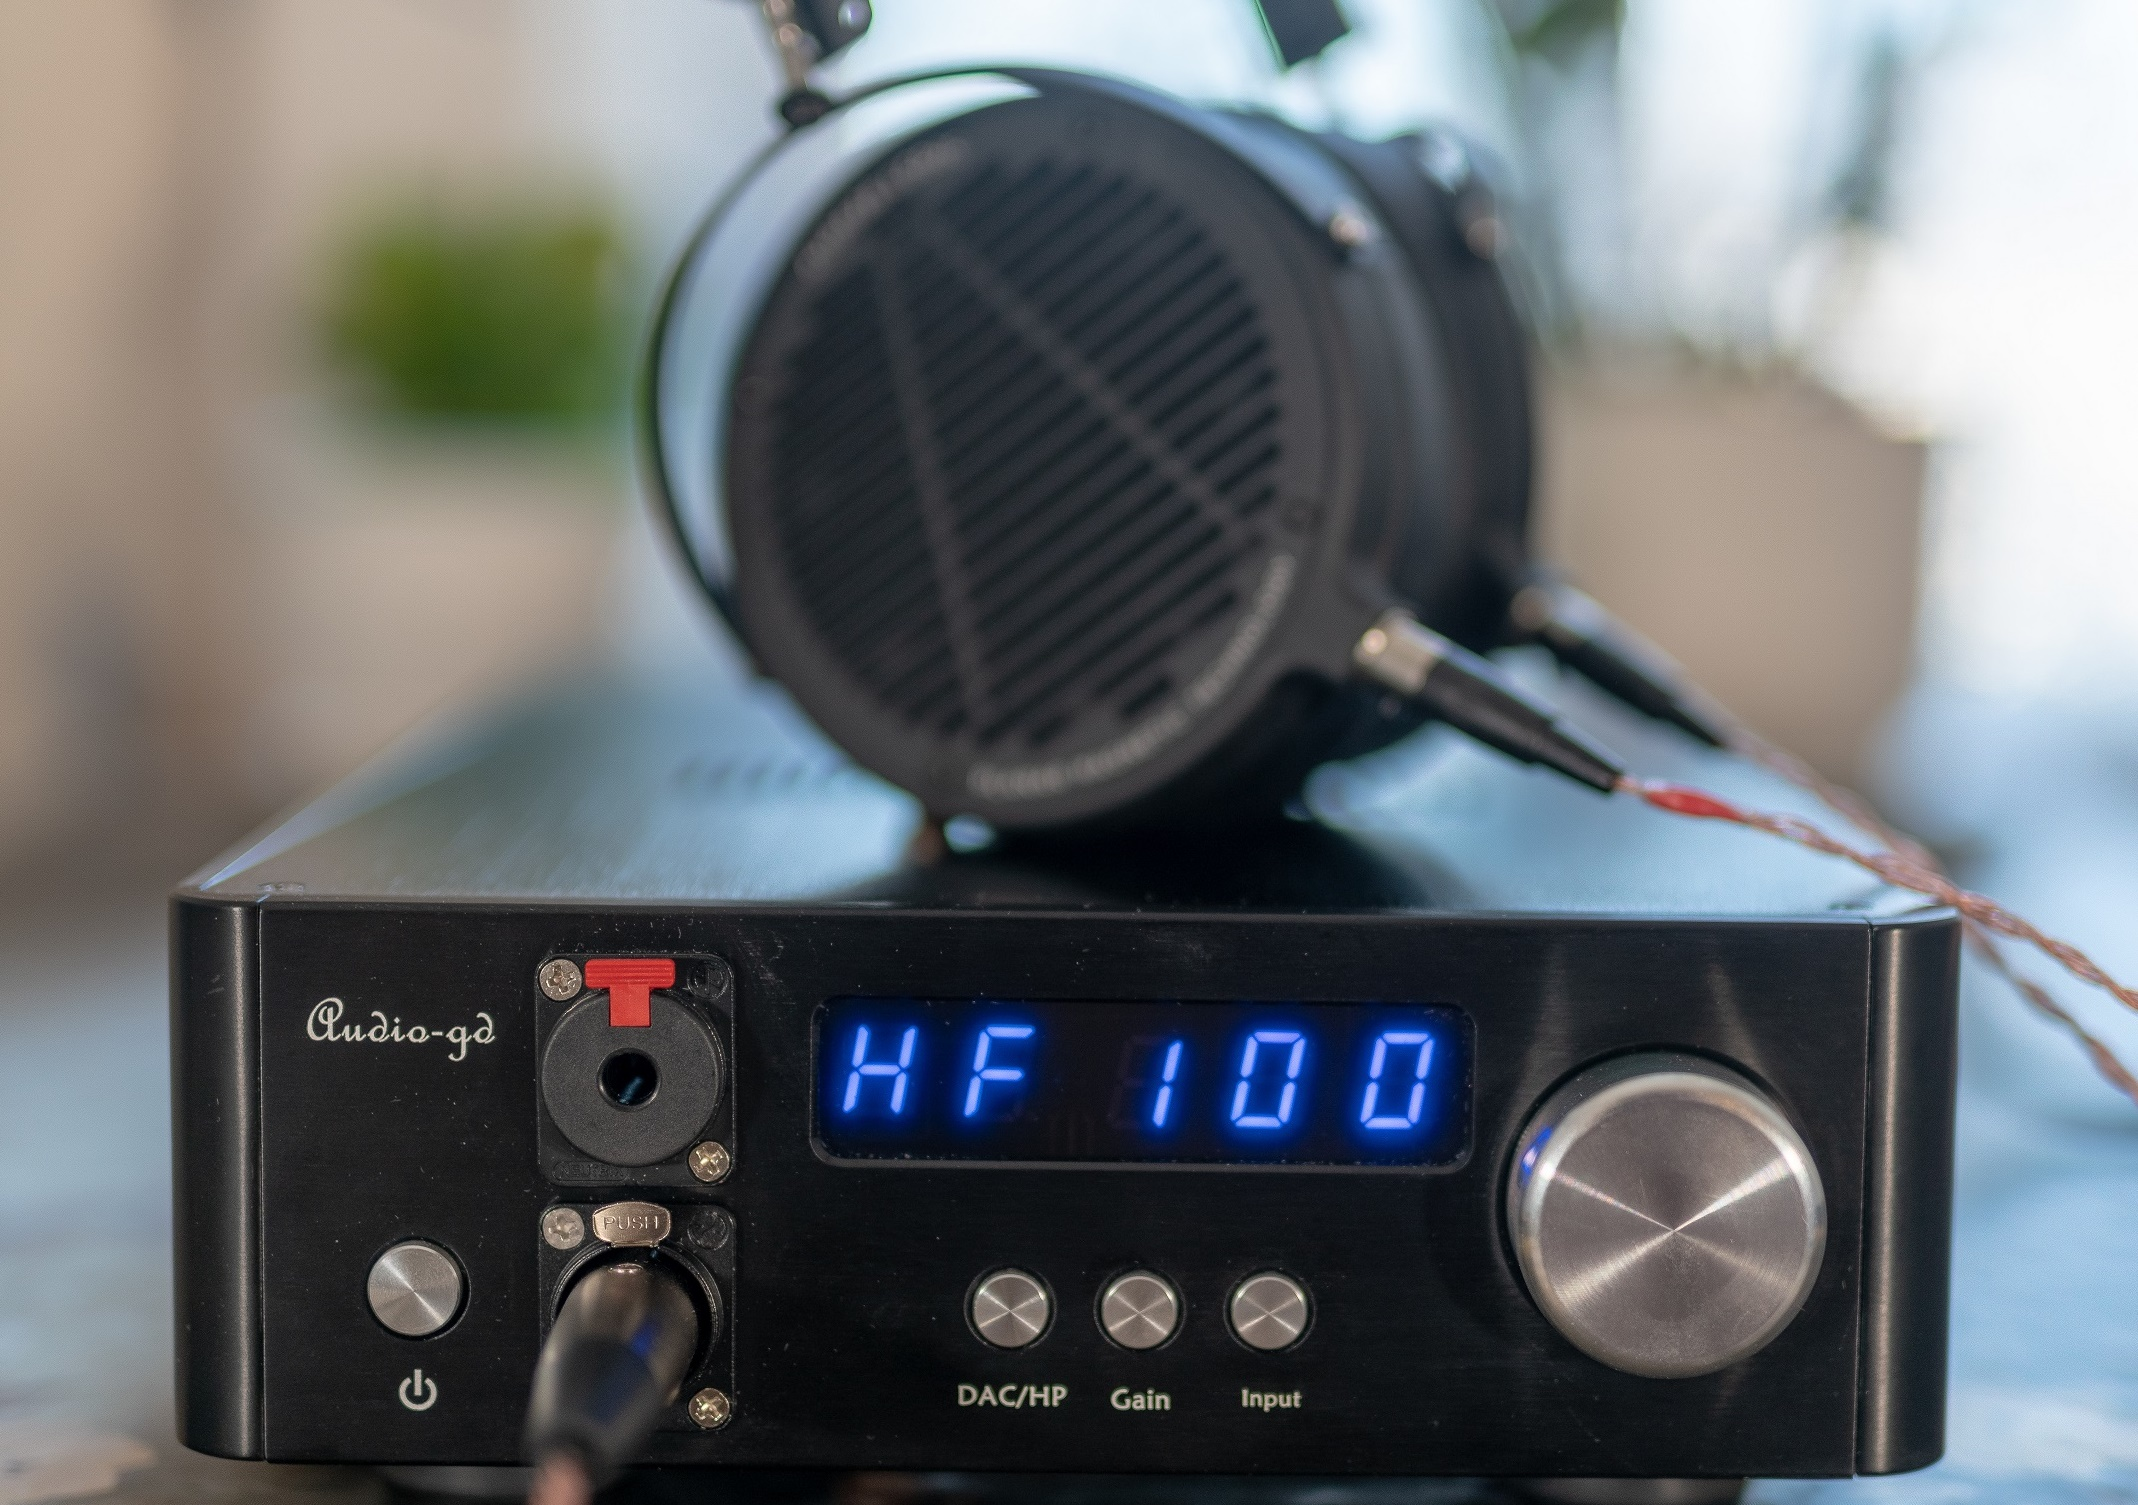 5219950bef4 Audio-gd NFB-28 | Page 134 | Headphone Reviews and Discussion - Head ...